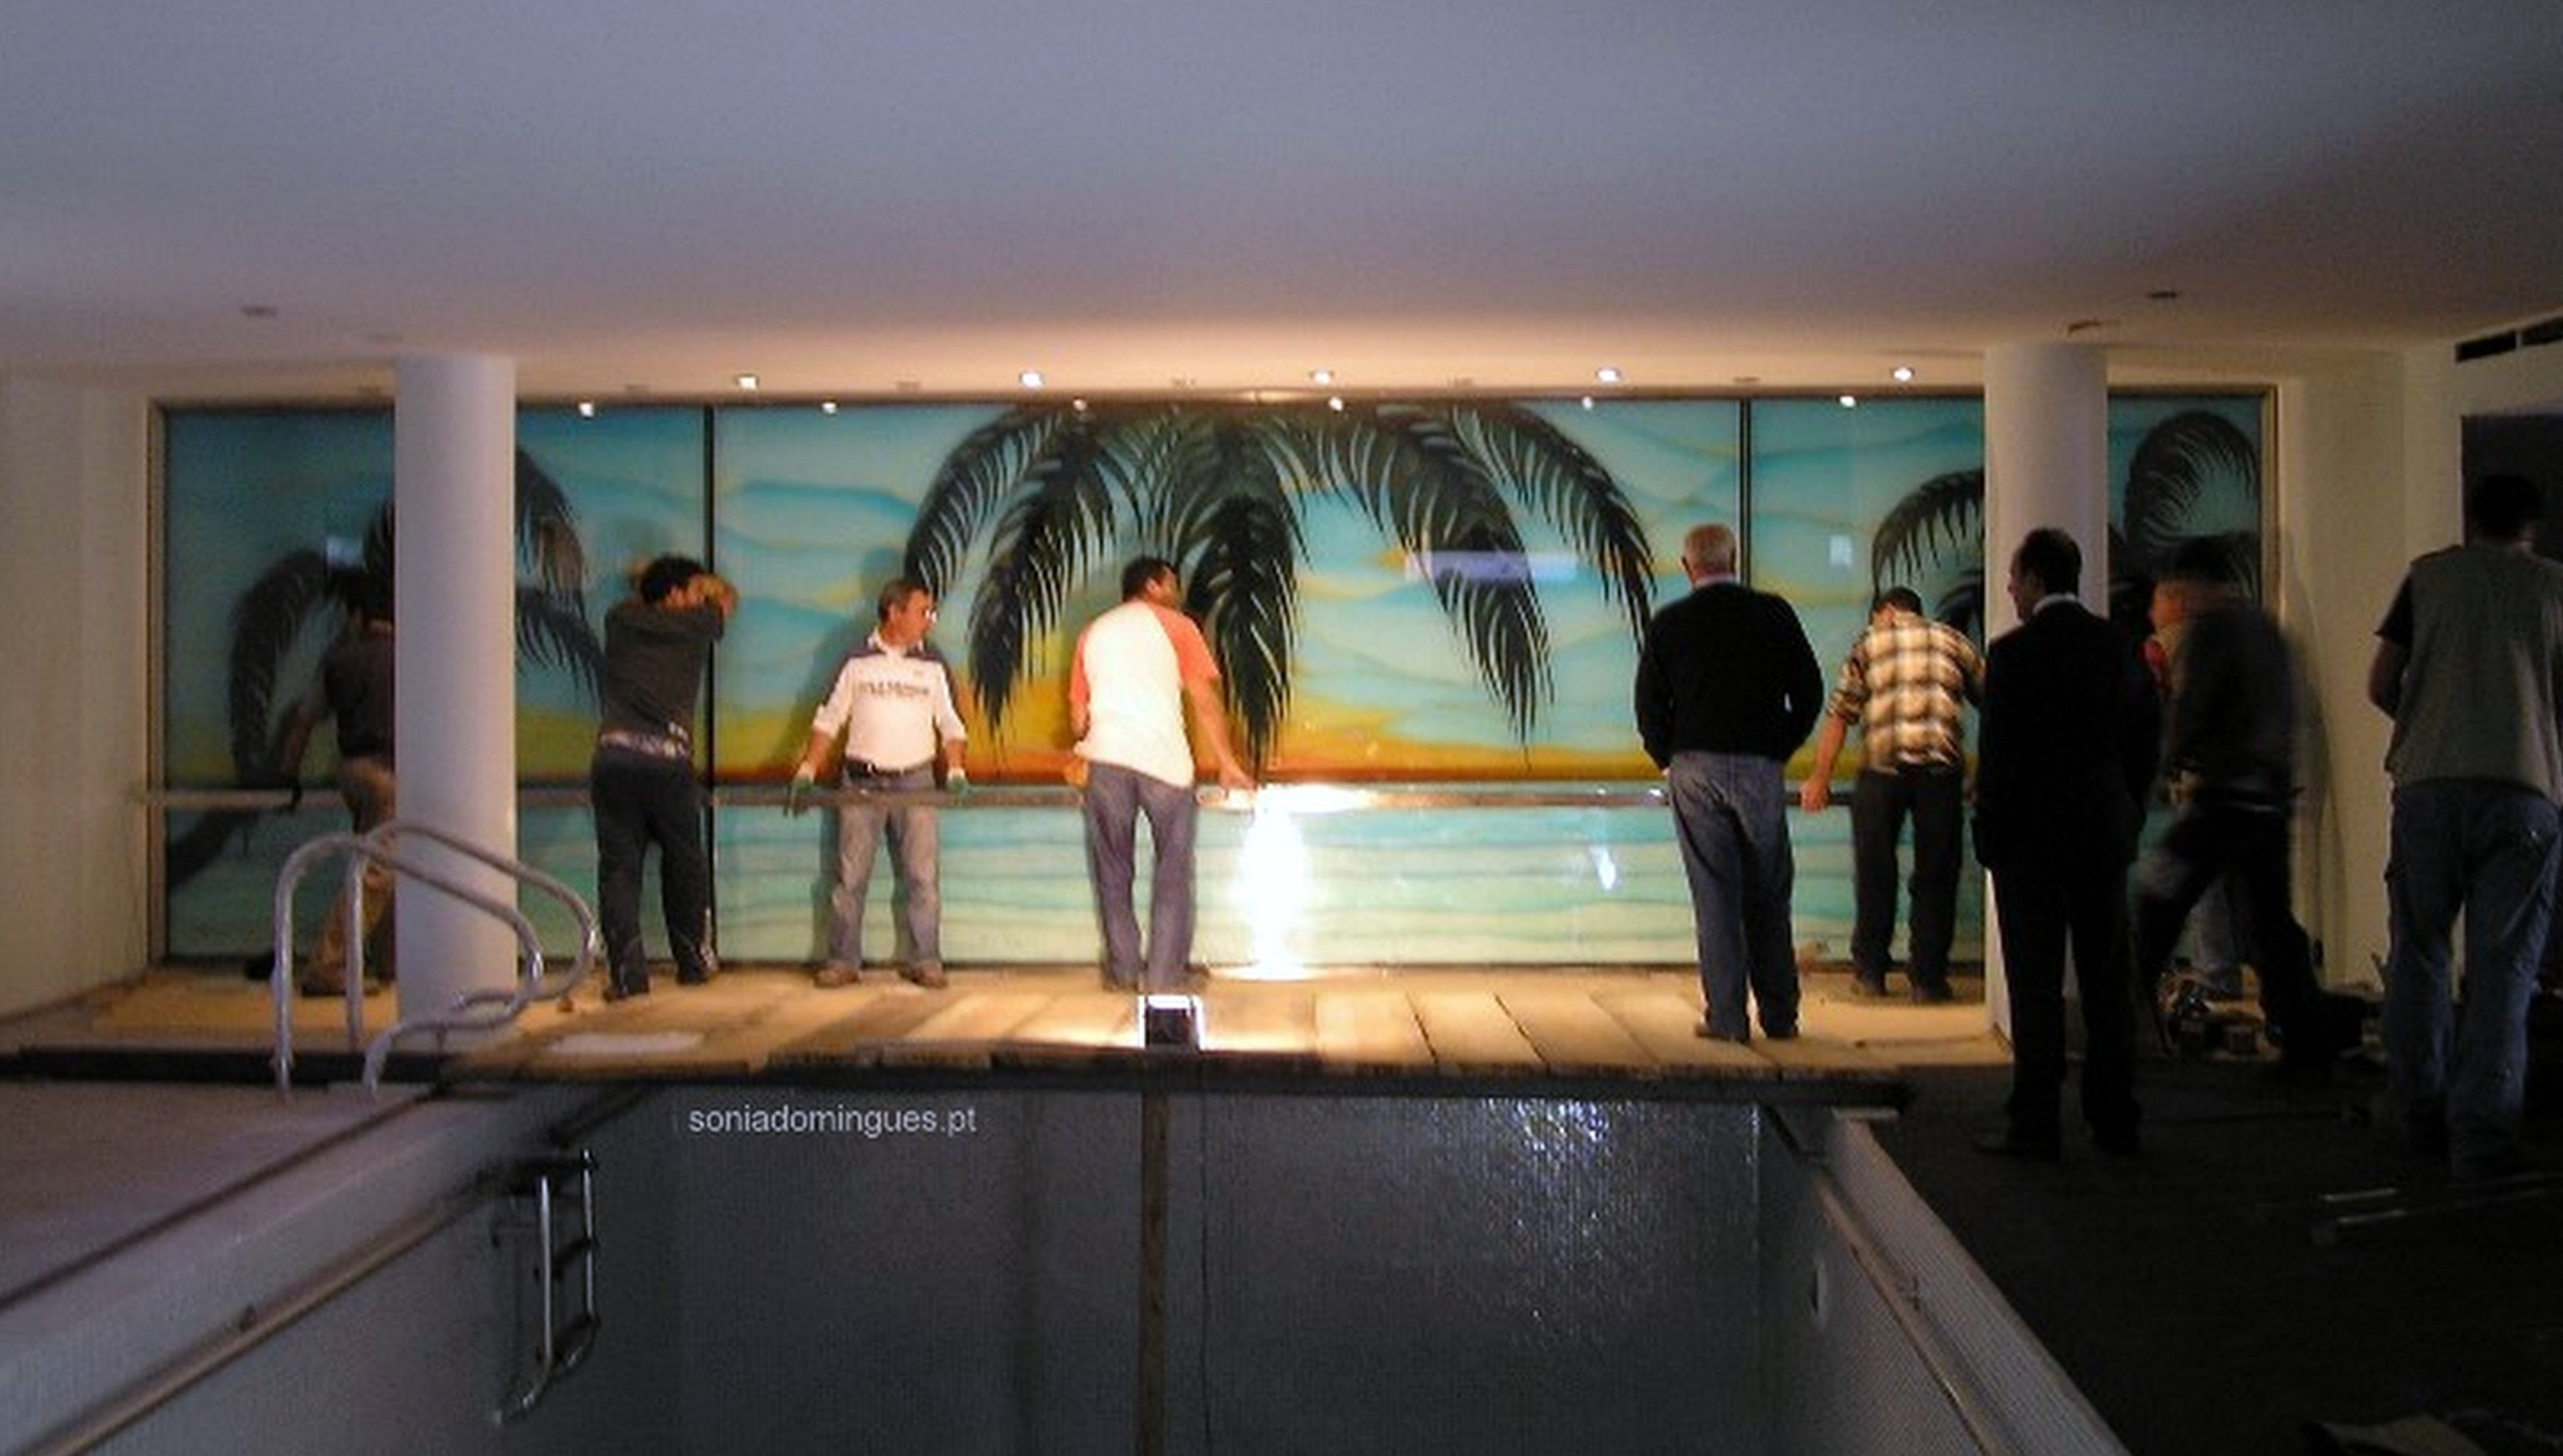 backstage of the stained glass to a pool by the master artist sonia domingues